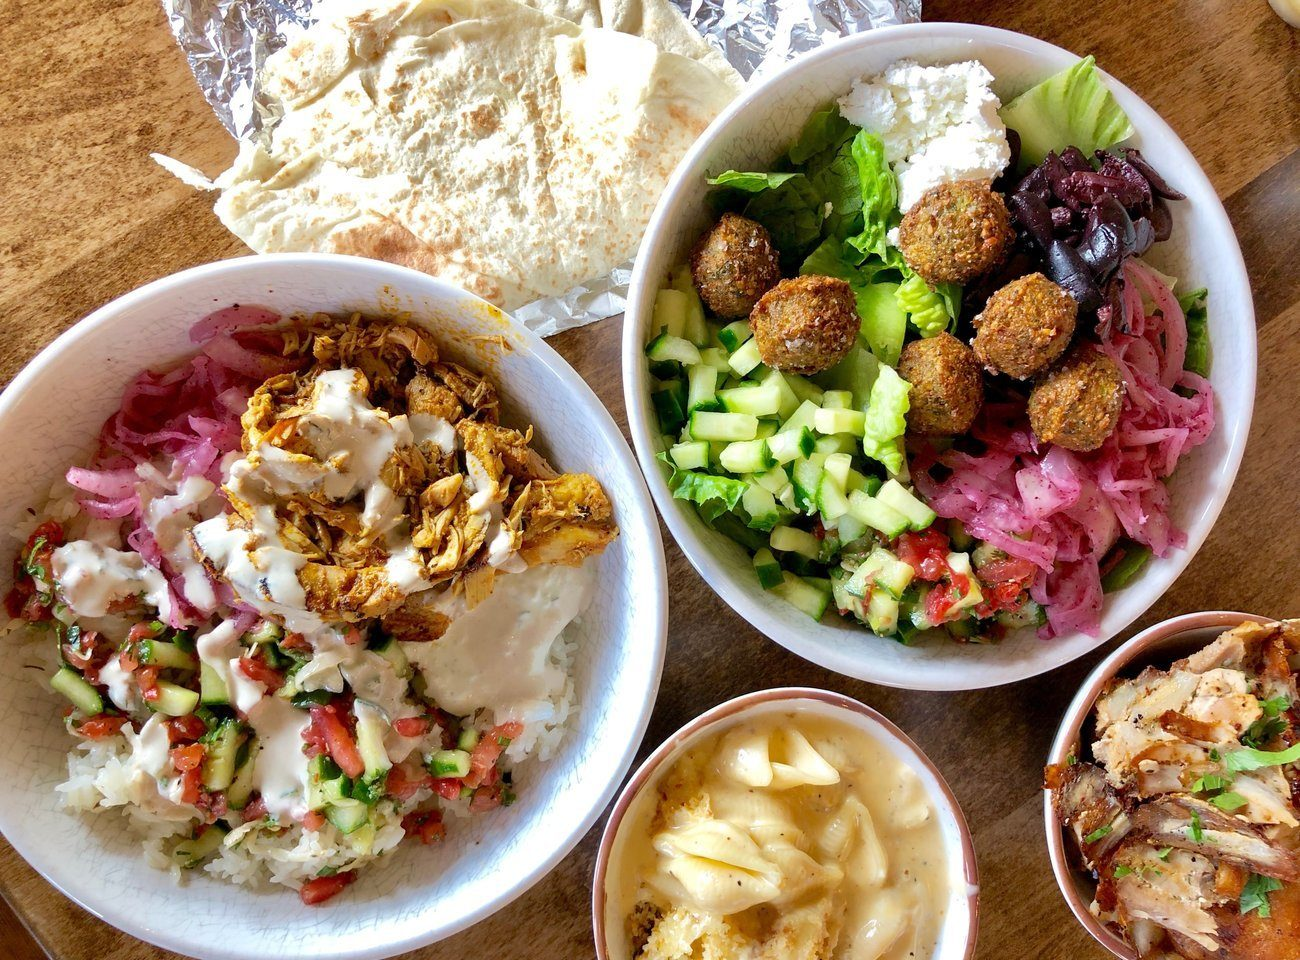 19 Charlotte spots to try if you want healthy options